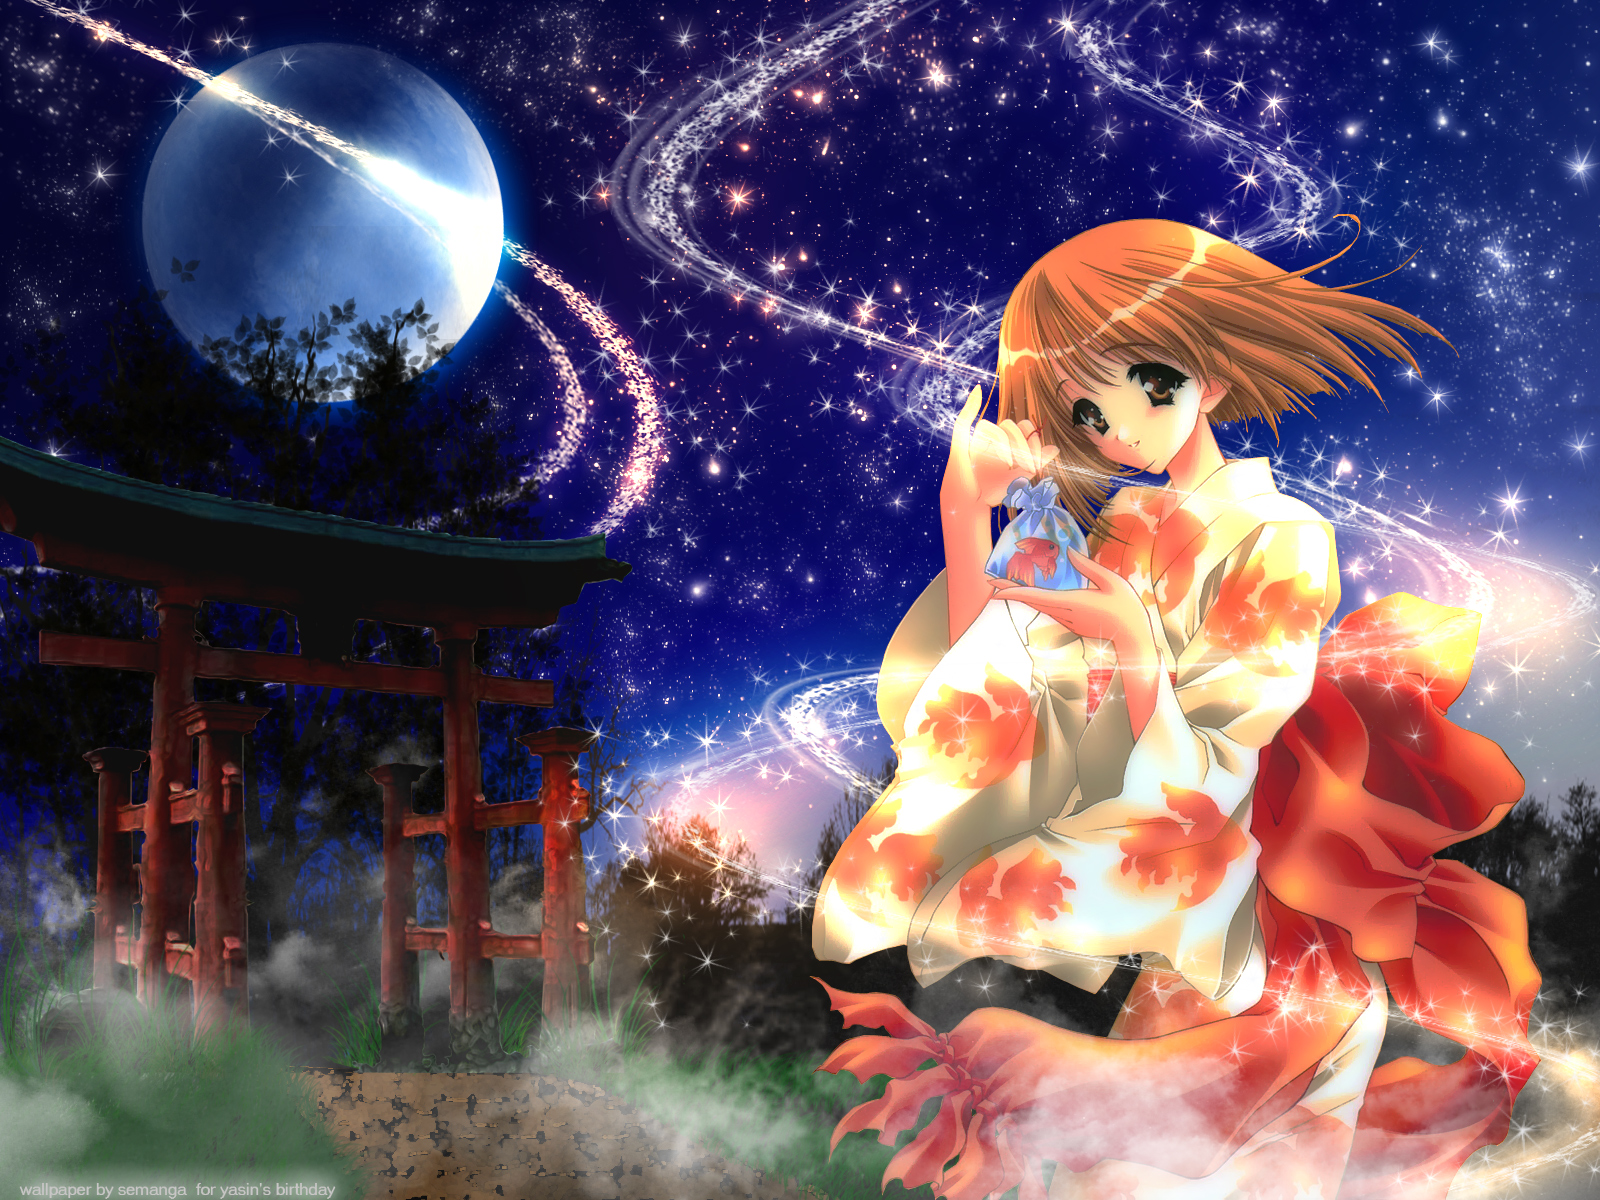 High definition wallpapers anime wallpapers - Anime background ...